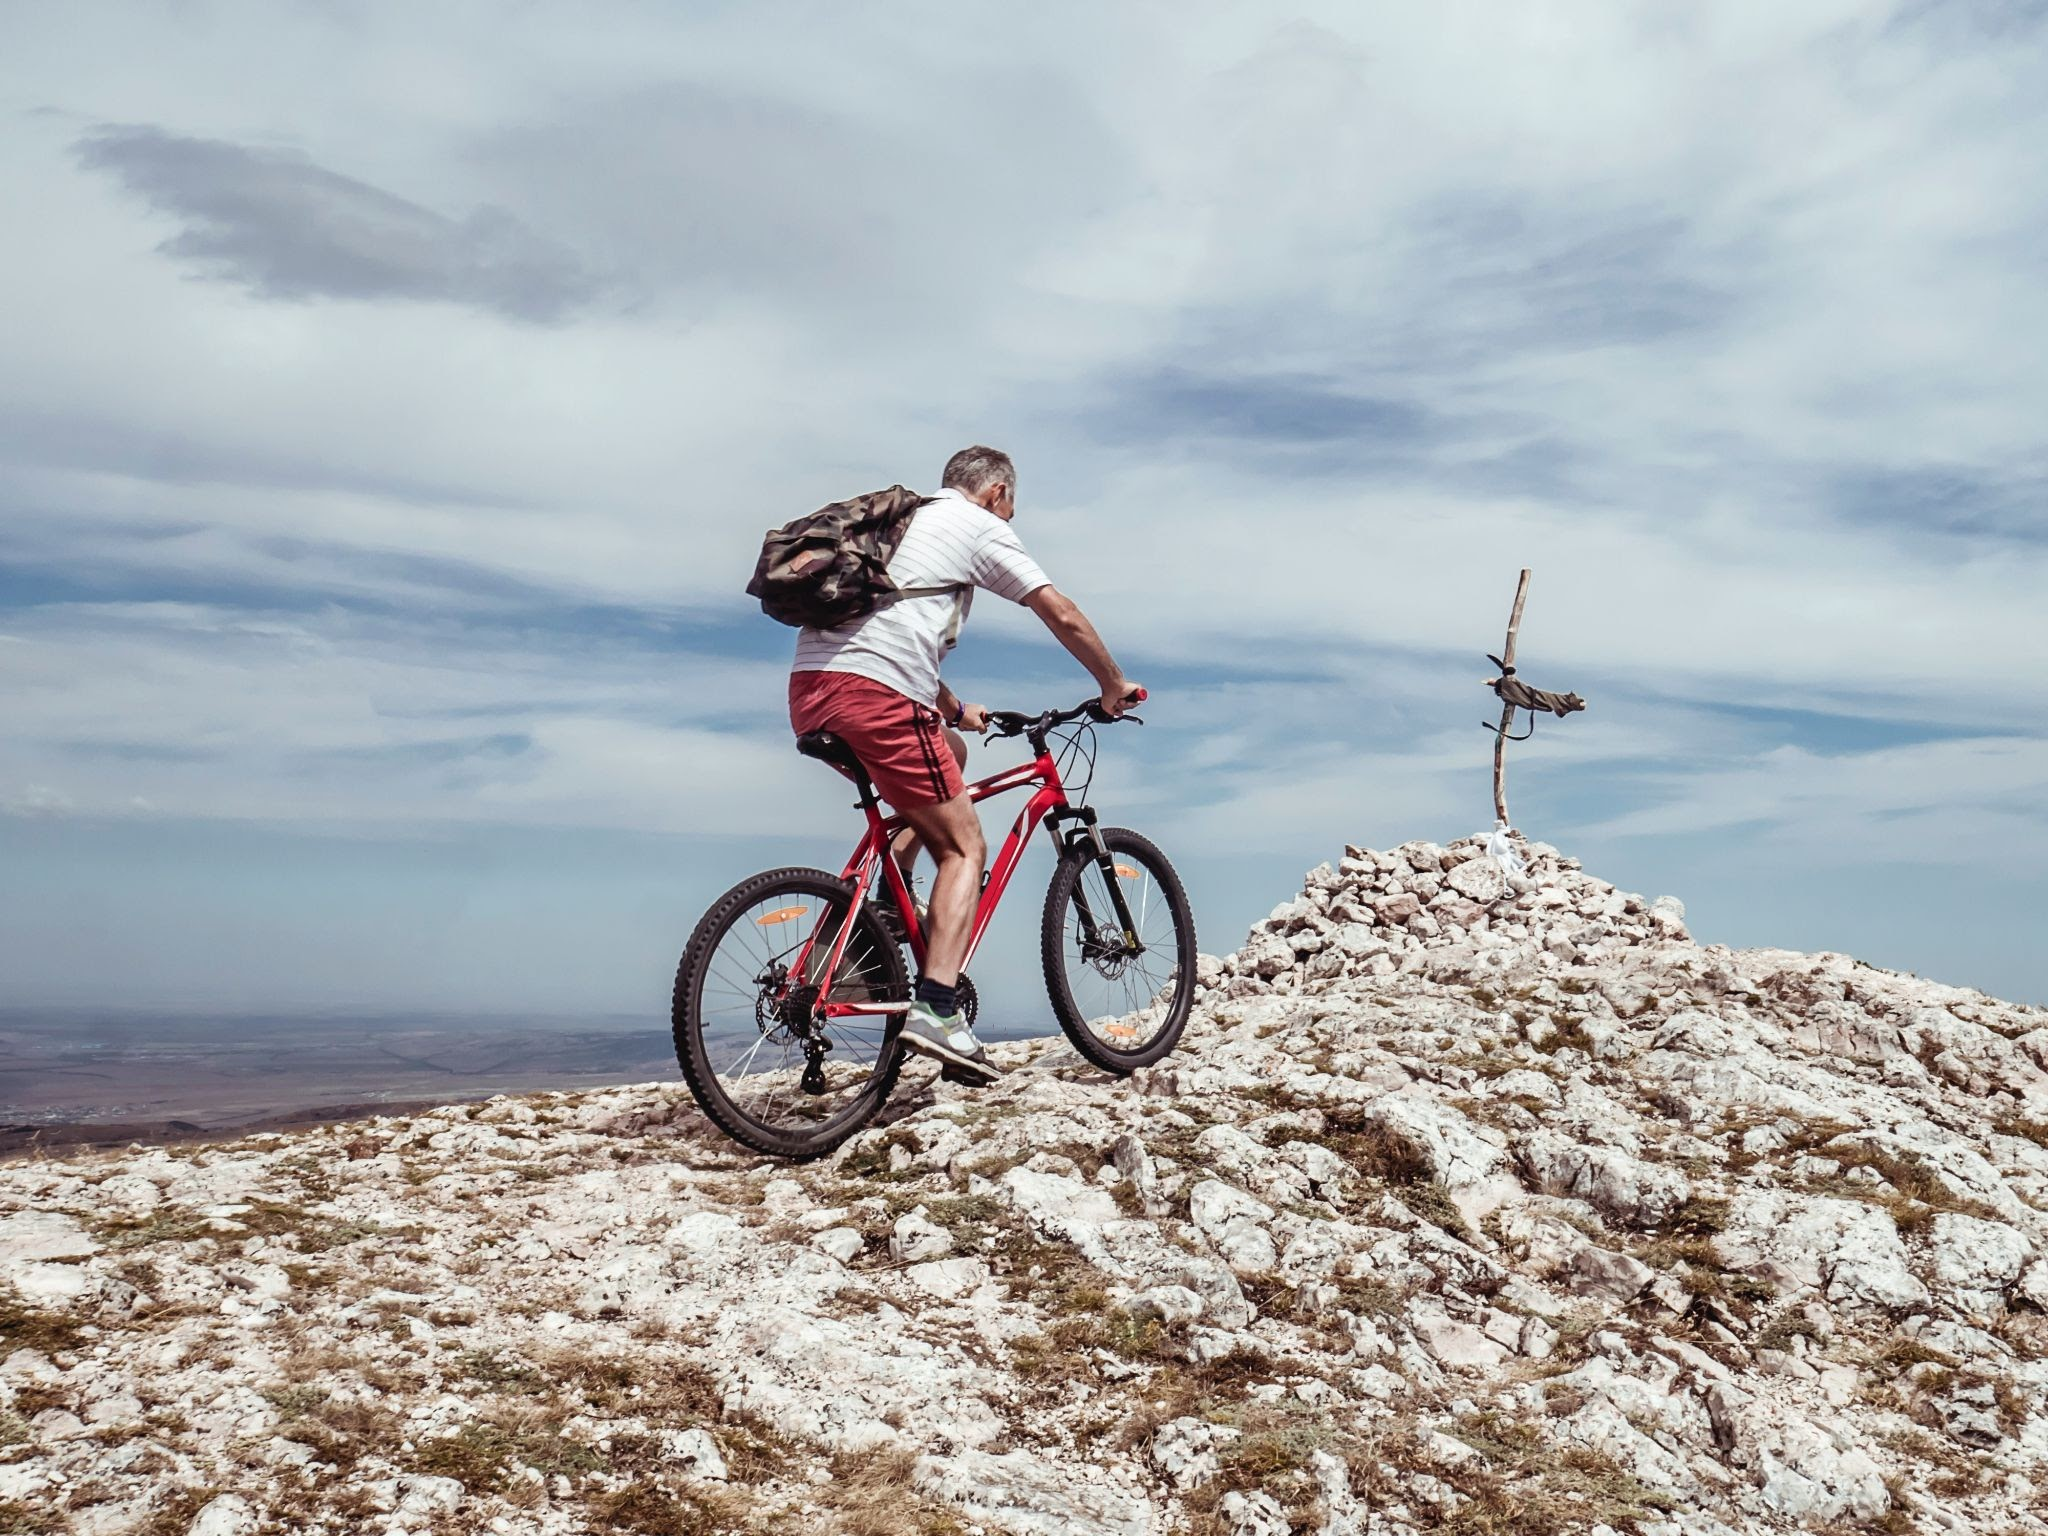 cycling cool down on mountain bike in snow